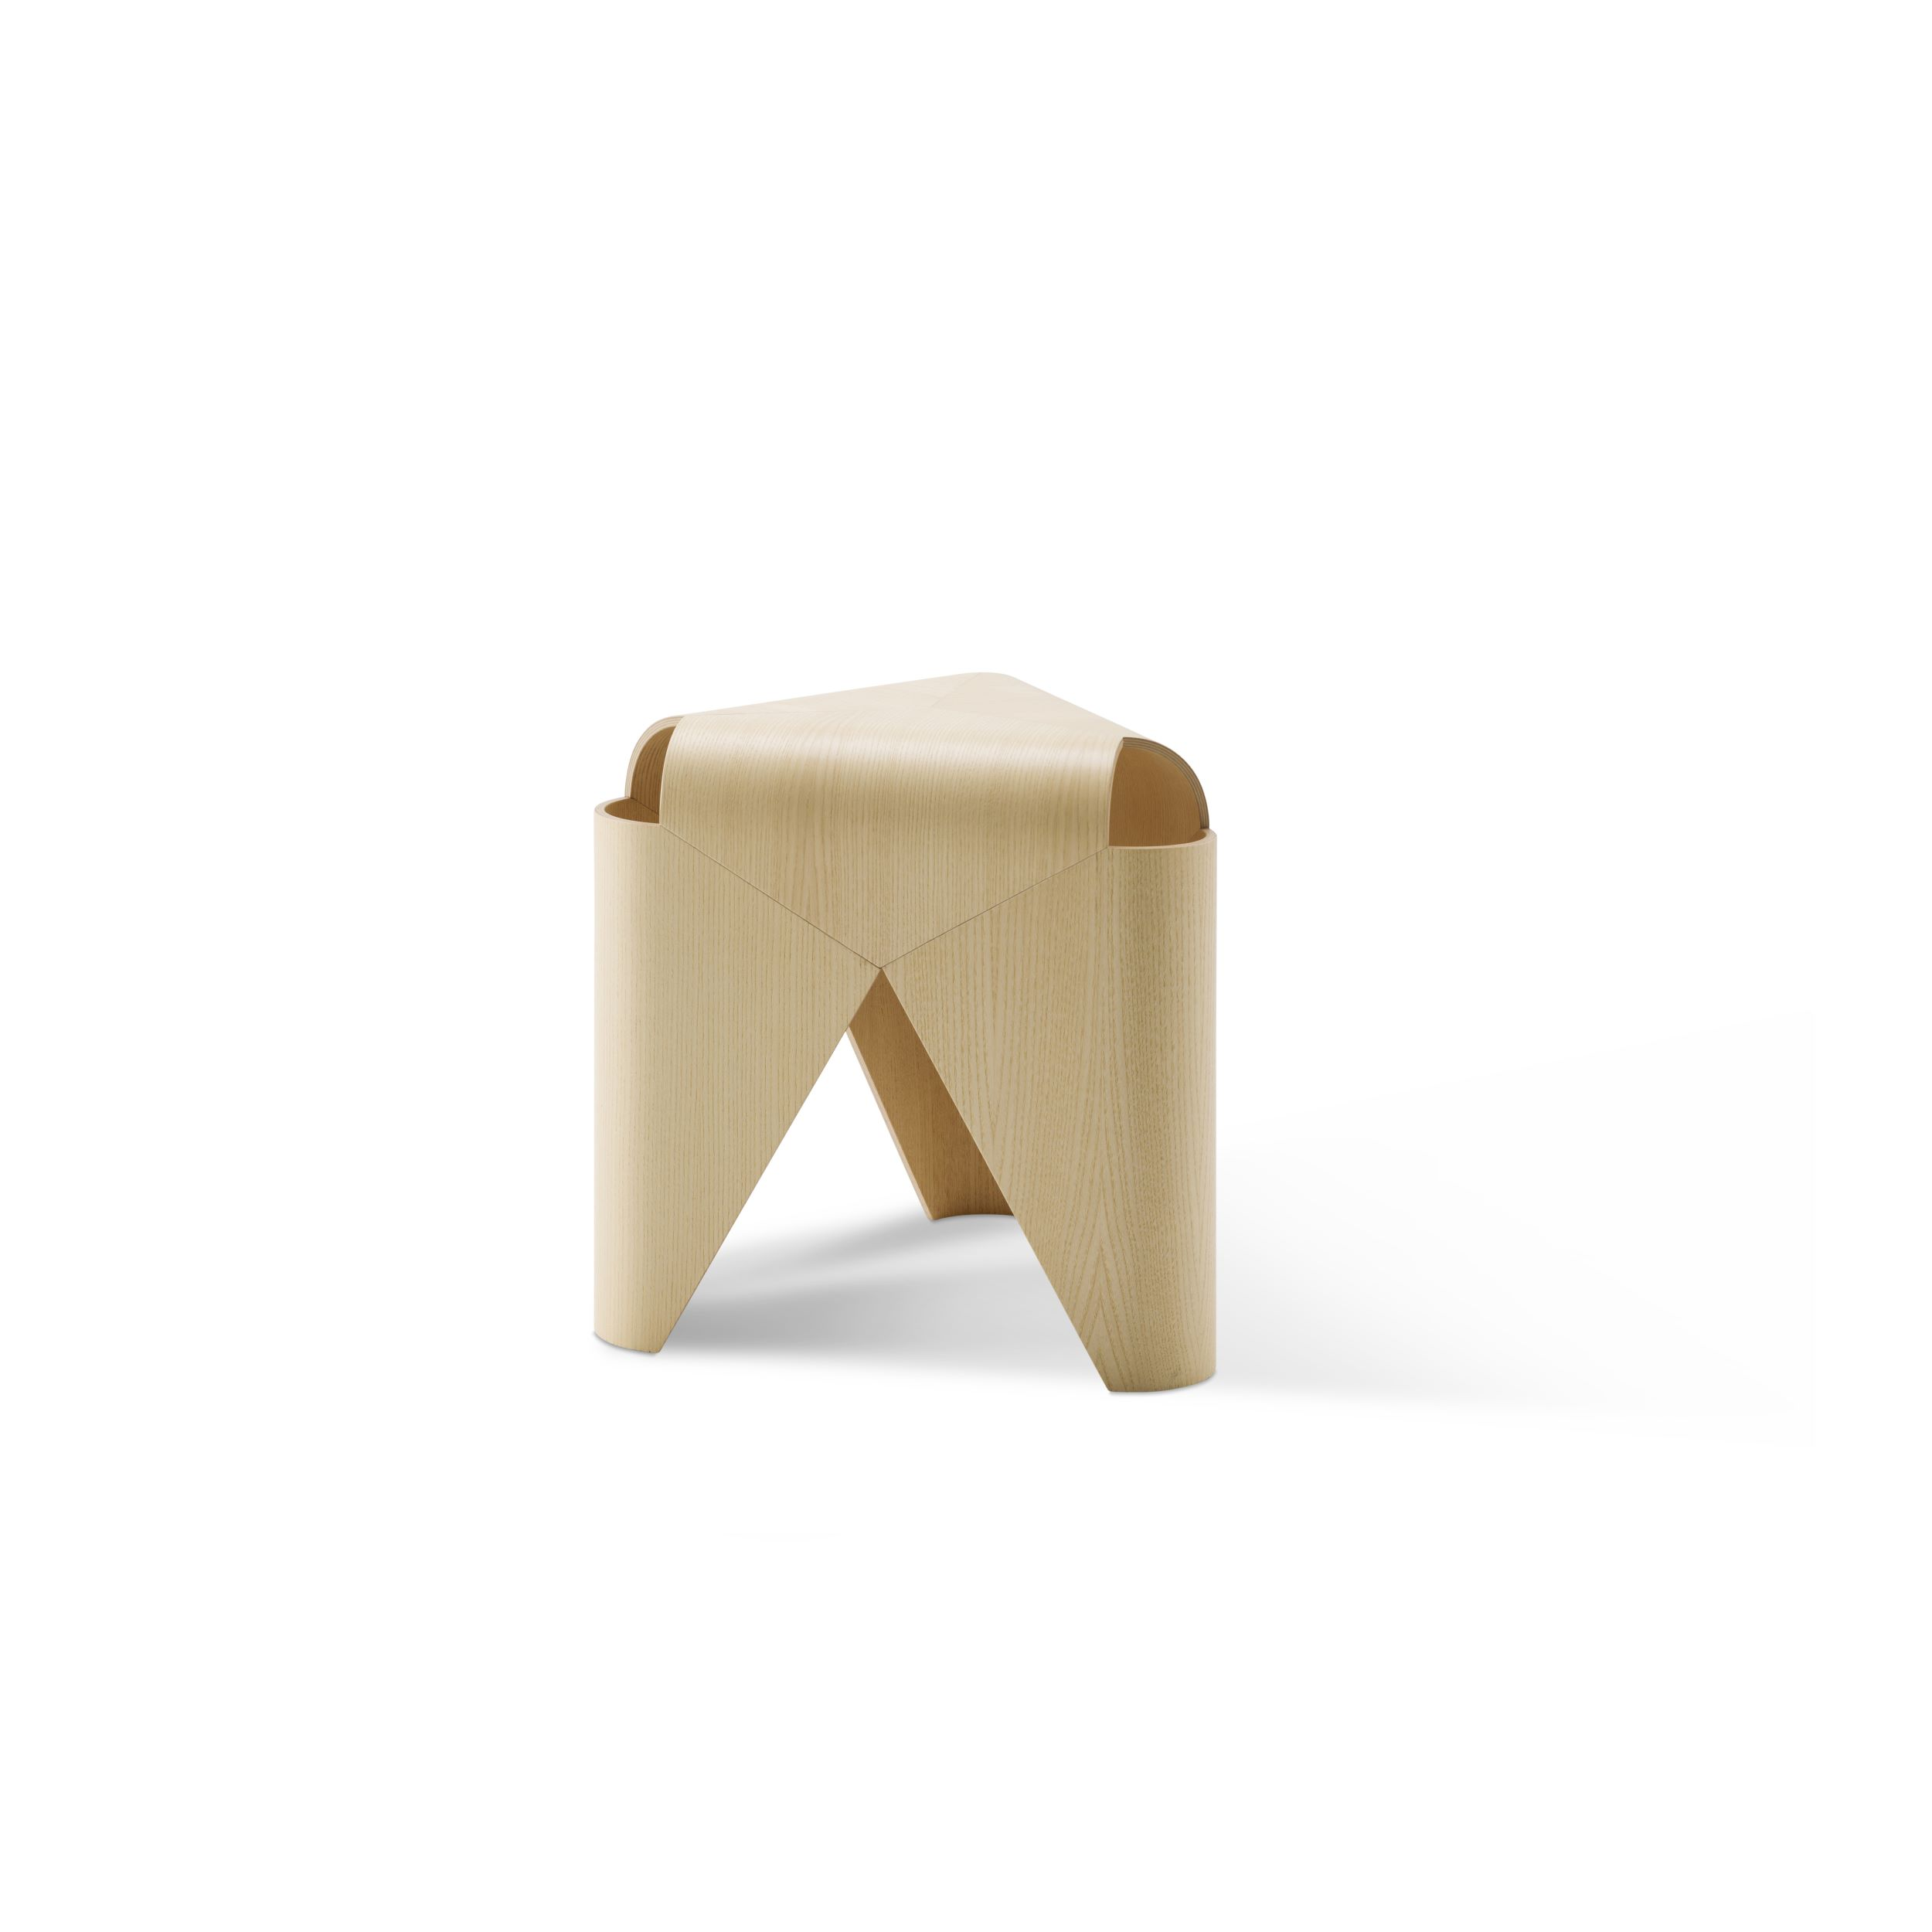 Falabella, Stool by Lucy Kurrein